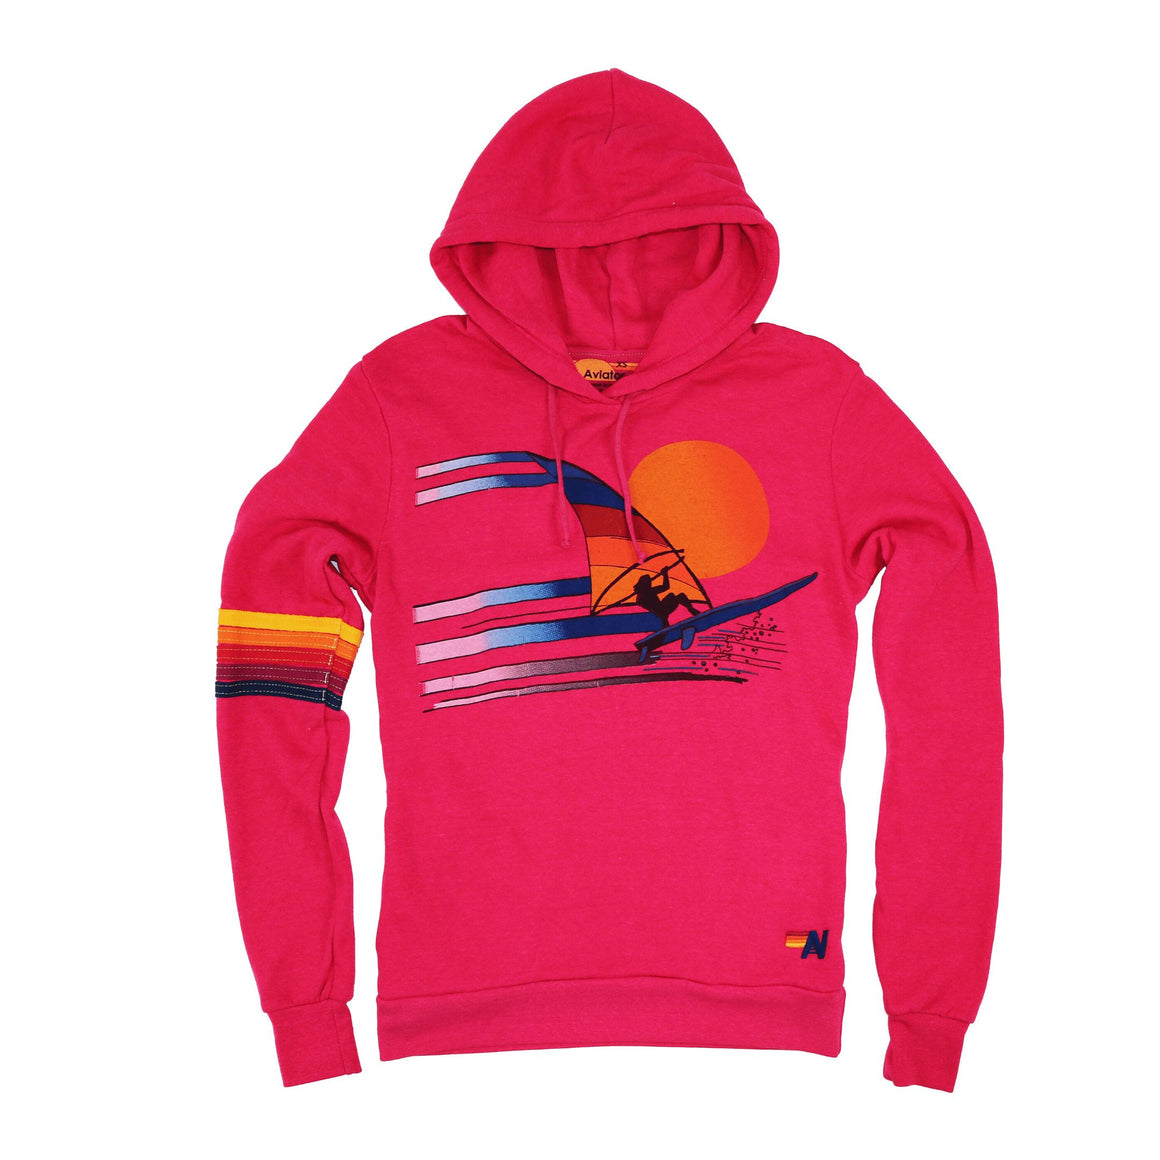 Aviator Nation - Adult Windsurf Jump Pullover Hoodie - Rose Sweatshirt Aviator Nation